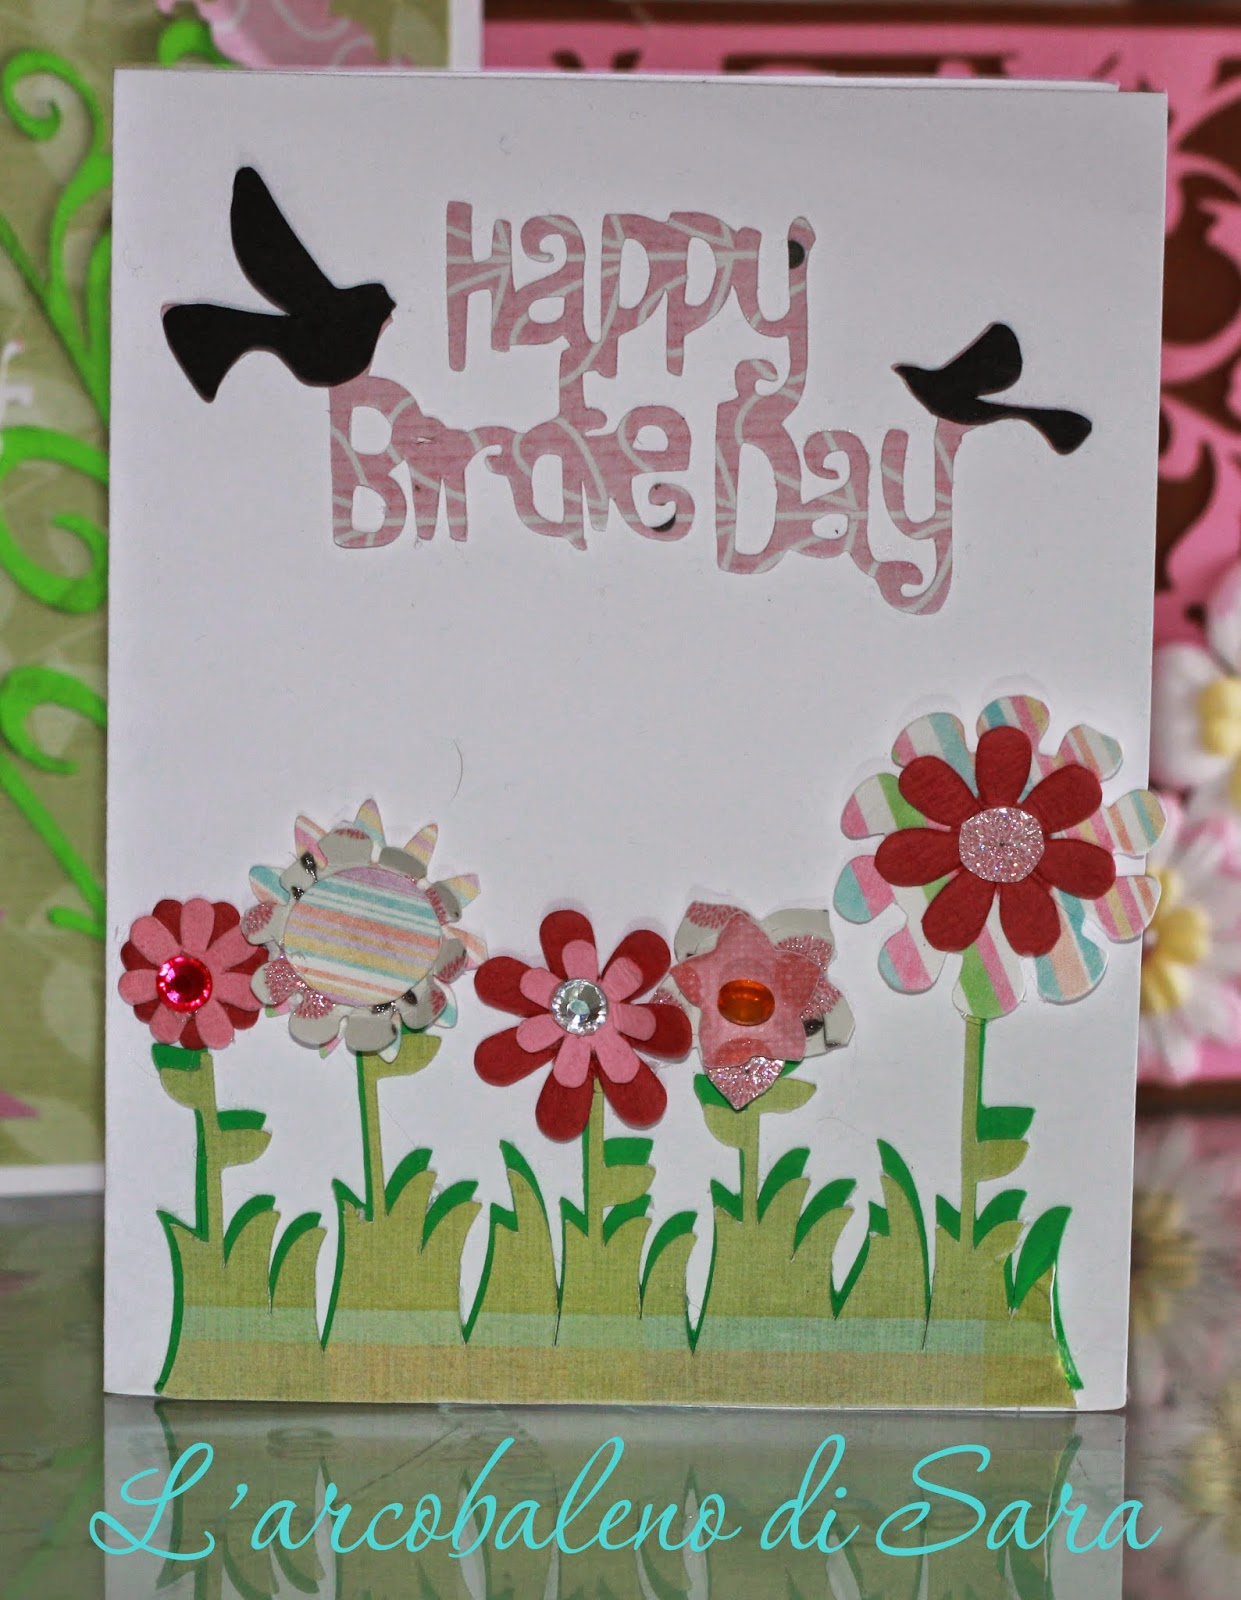 happie birdie day card